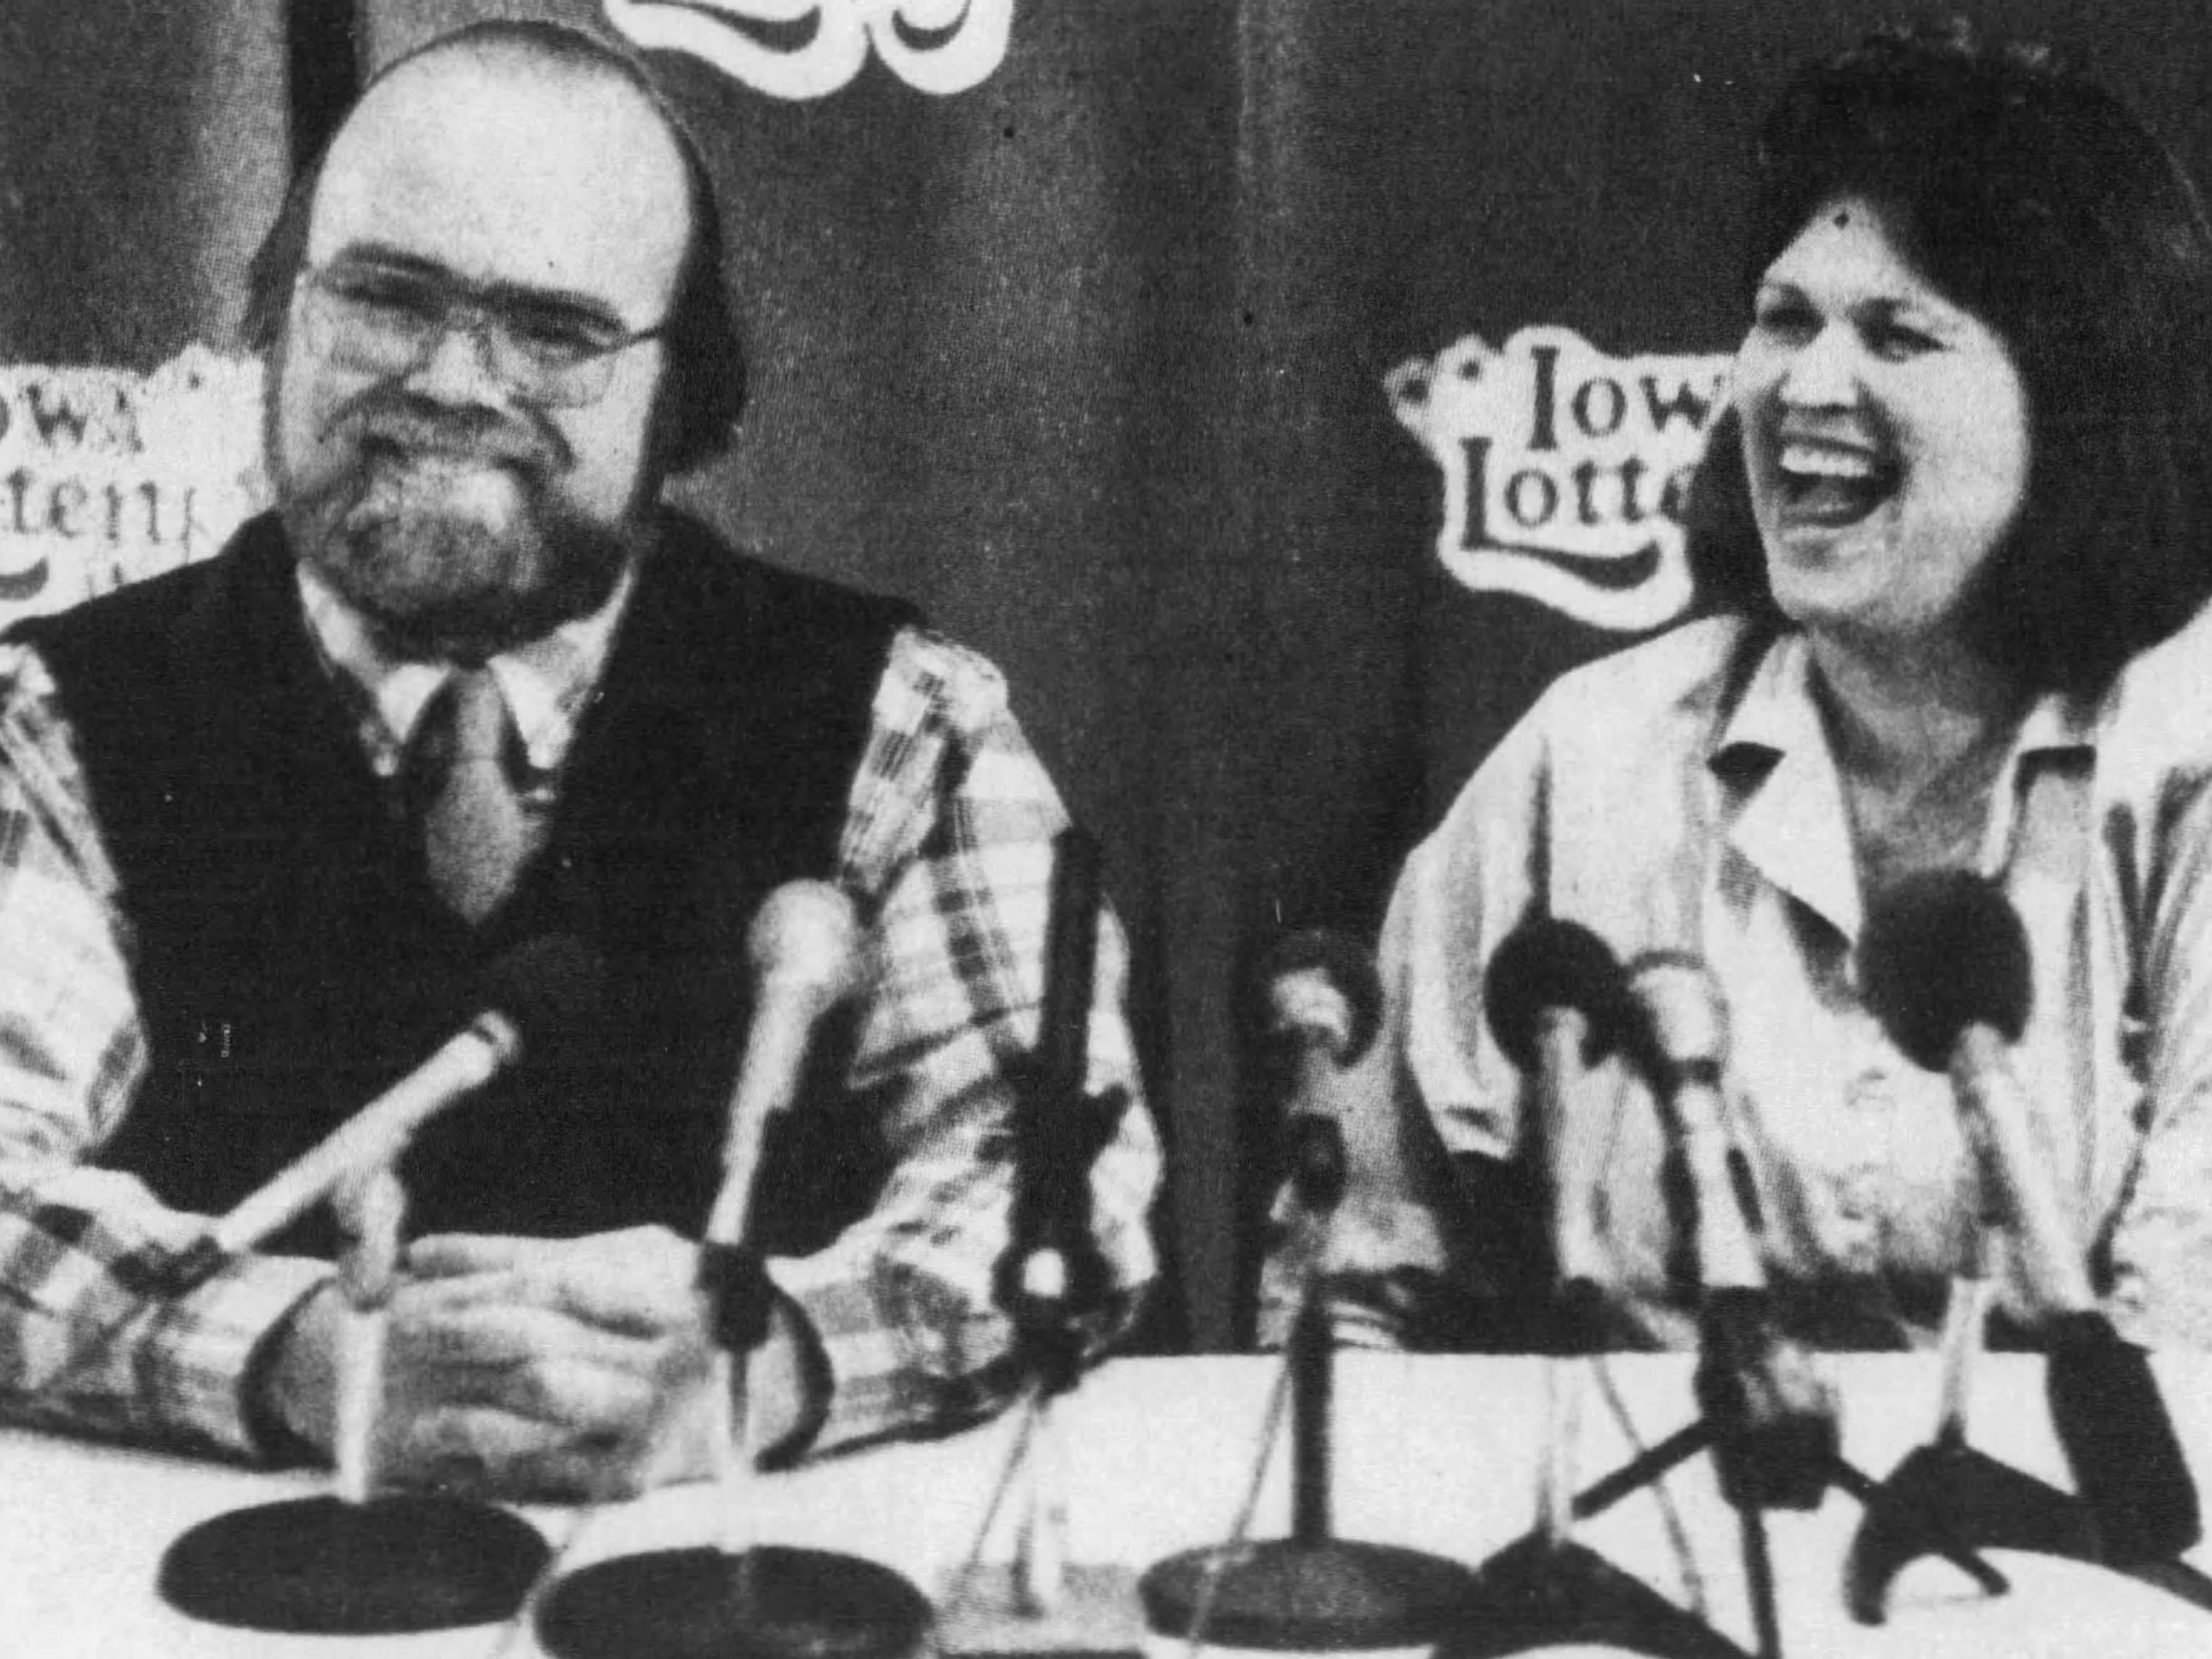 March 1990: Maquoketa's Allen, left, and Roice Earles won a Lotto America prize worth $19.64 million.